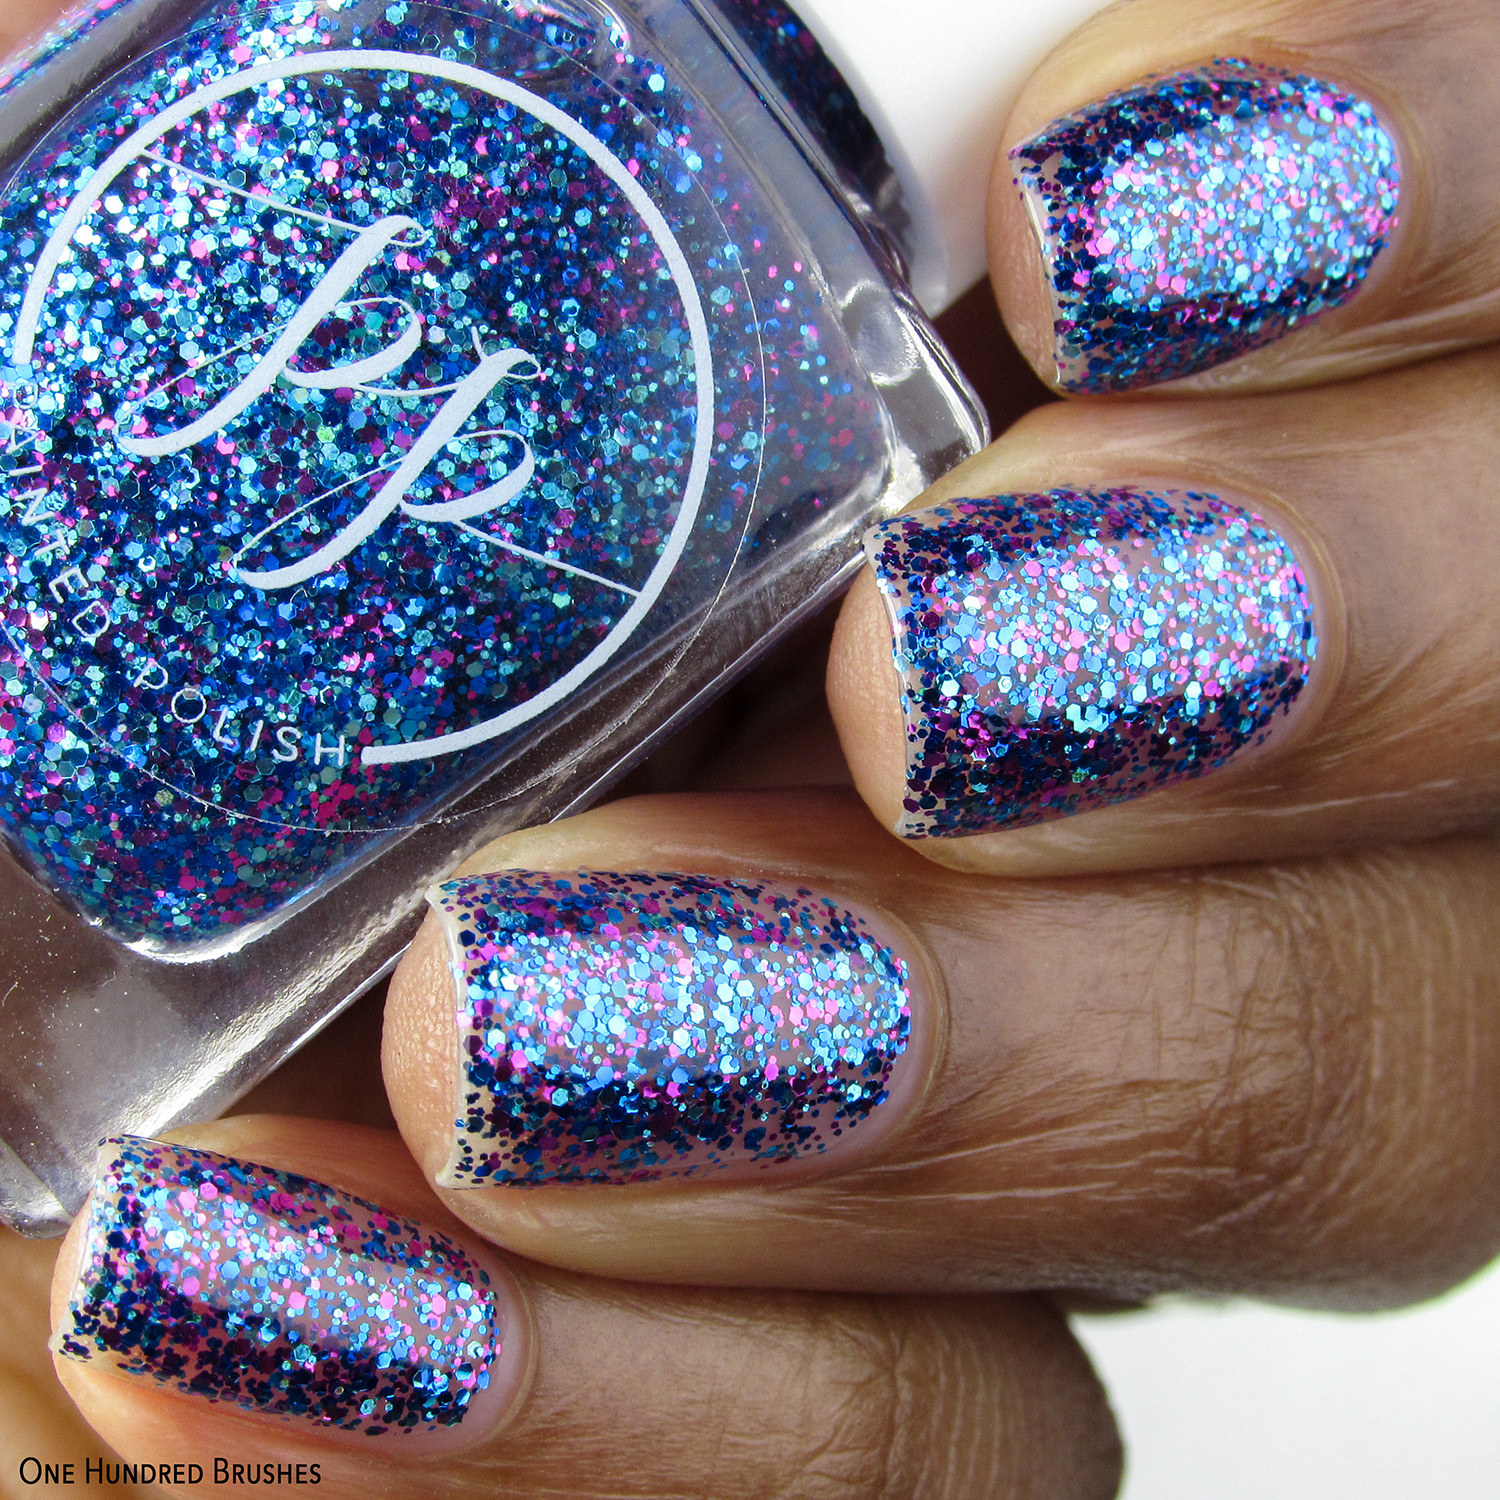 Coralberry Cold Snap - Painted Polish by Lexi - Blizzards & Berries Jan 2020